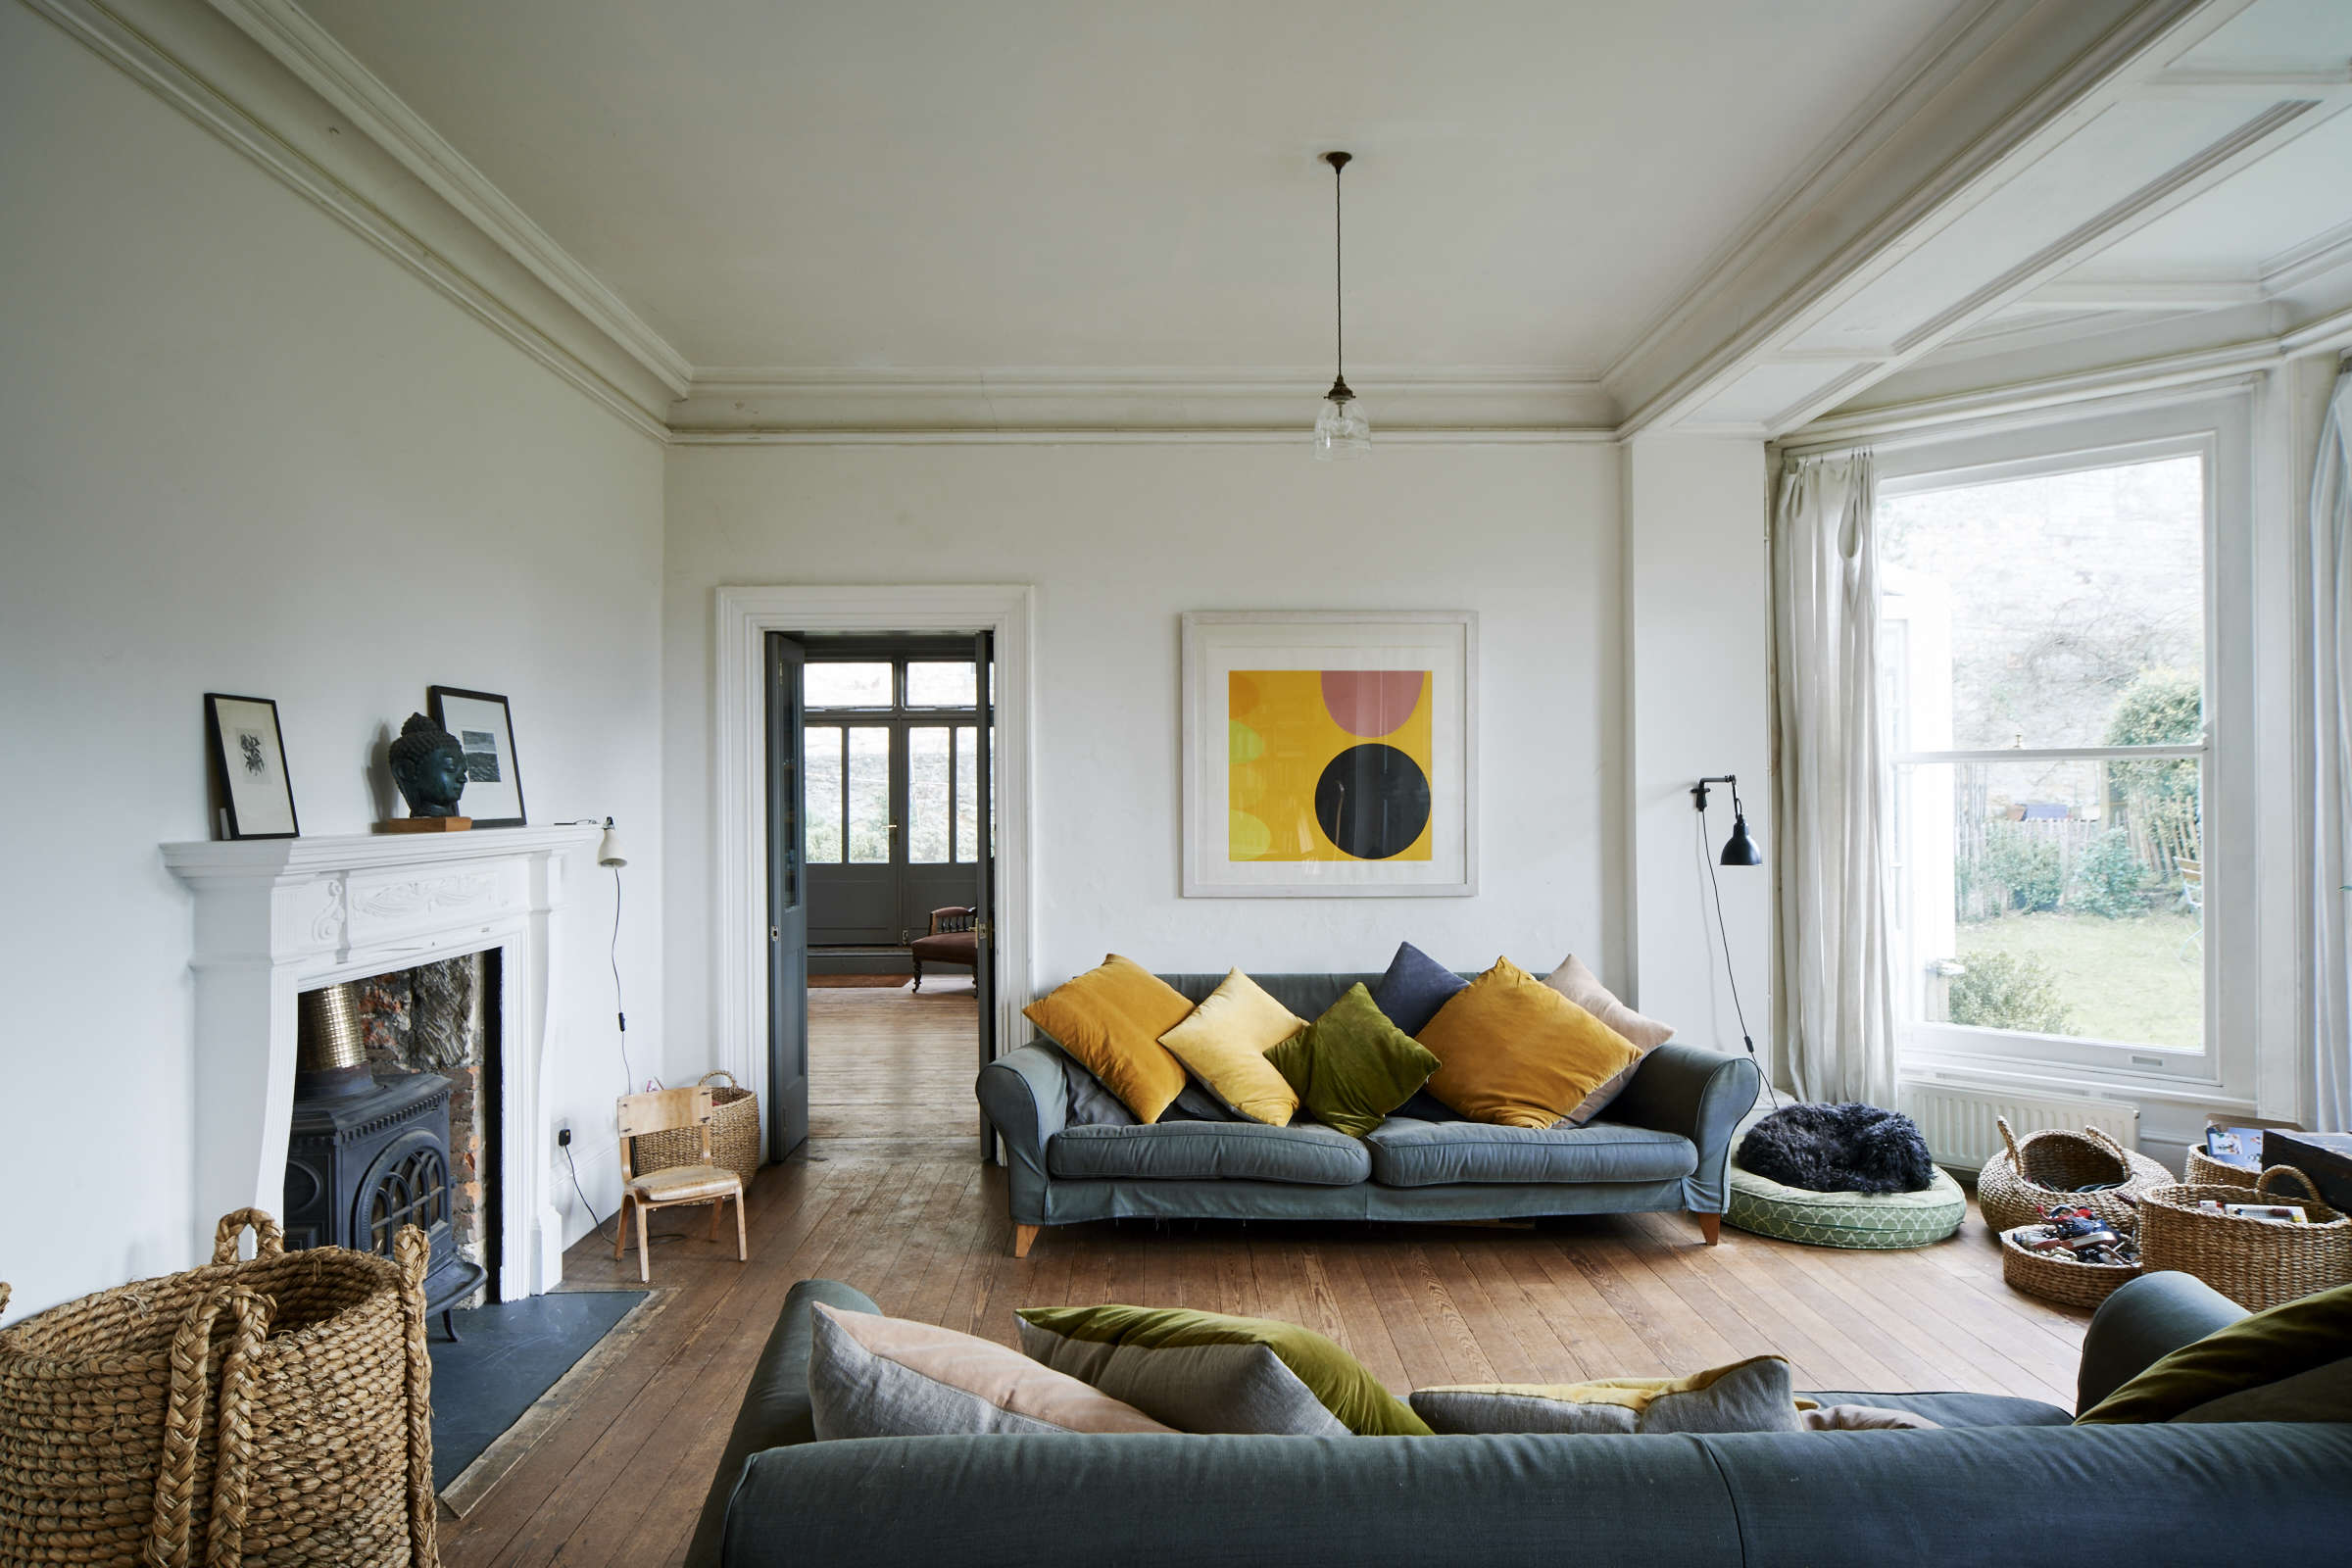 Steal This Look A Country House with Selective Color niki turner stroud remodelista 10